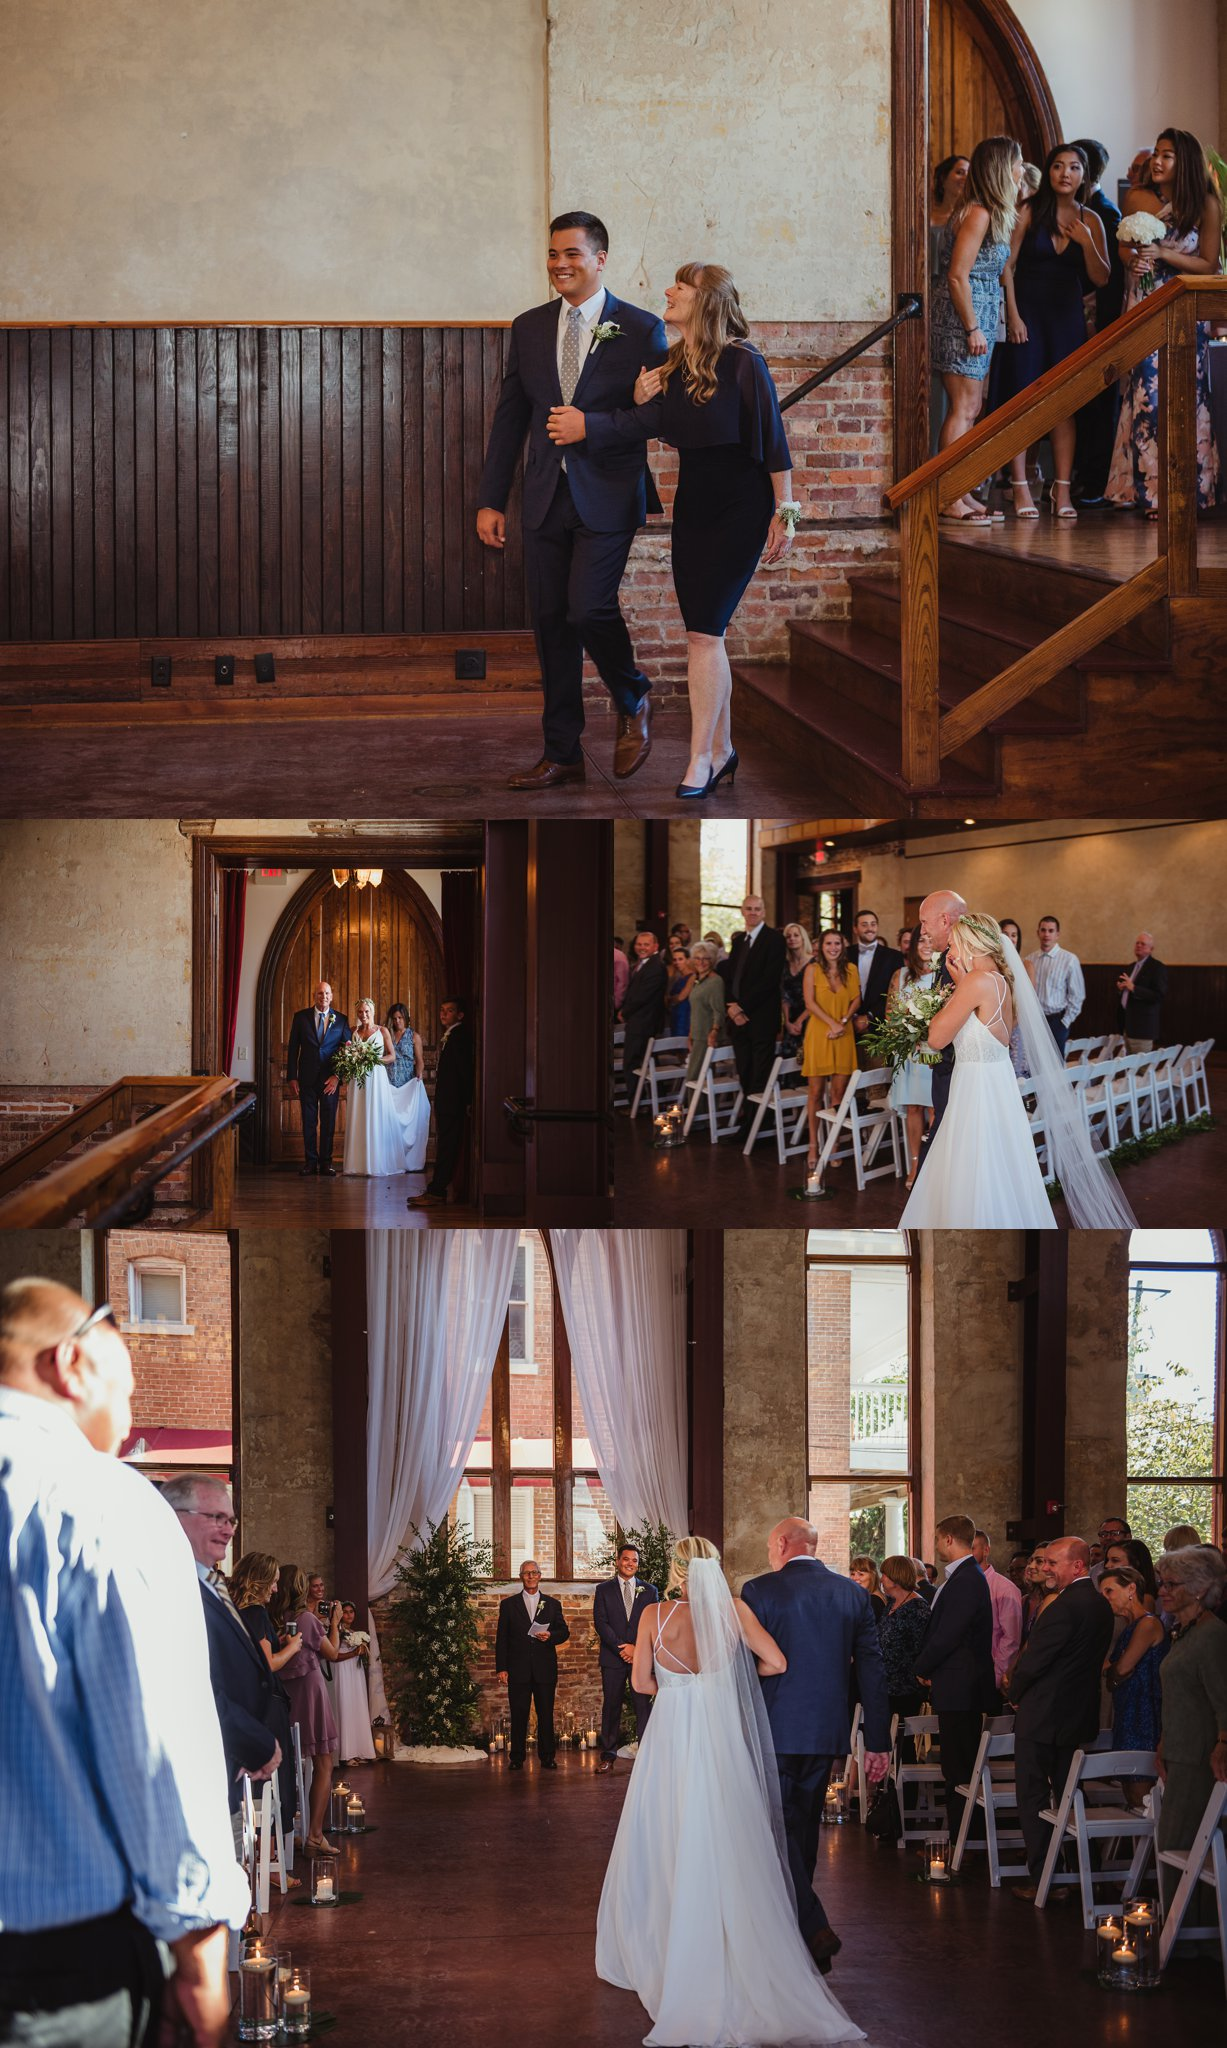 The bride and groom walk down the aisle at their wedding at the Brooklyn Arts Center in Wilmington, NC, photos by Rose Trail Images.